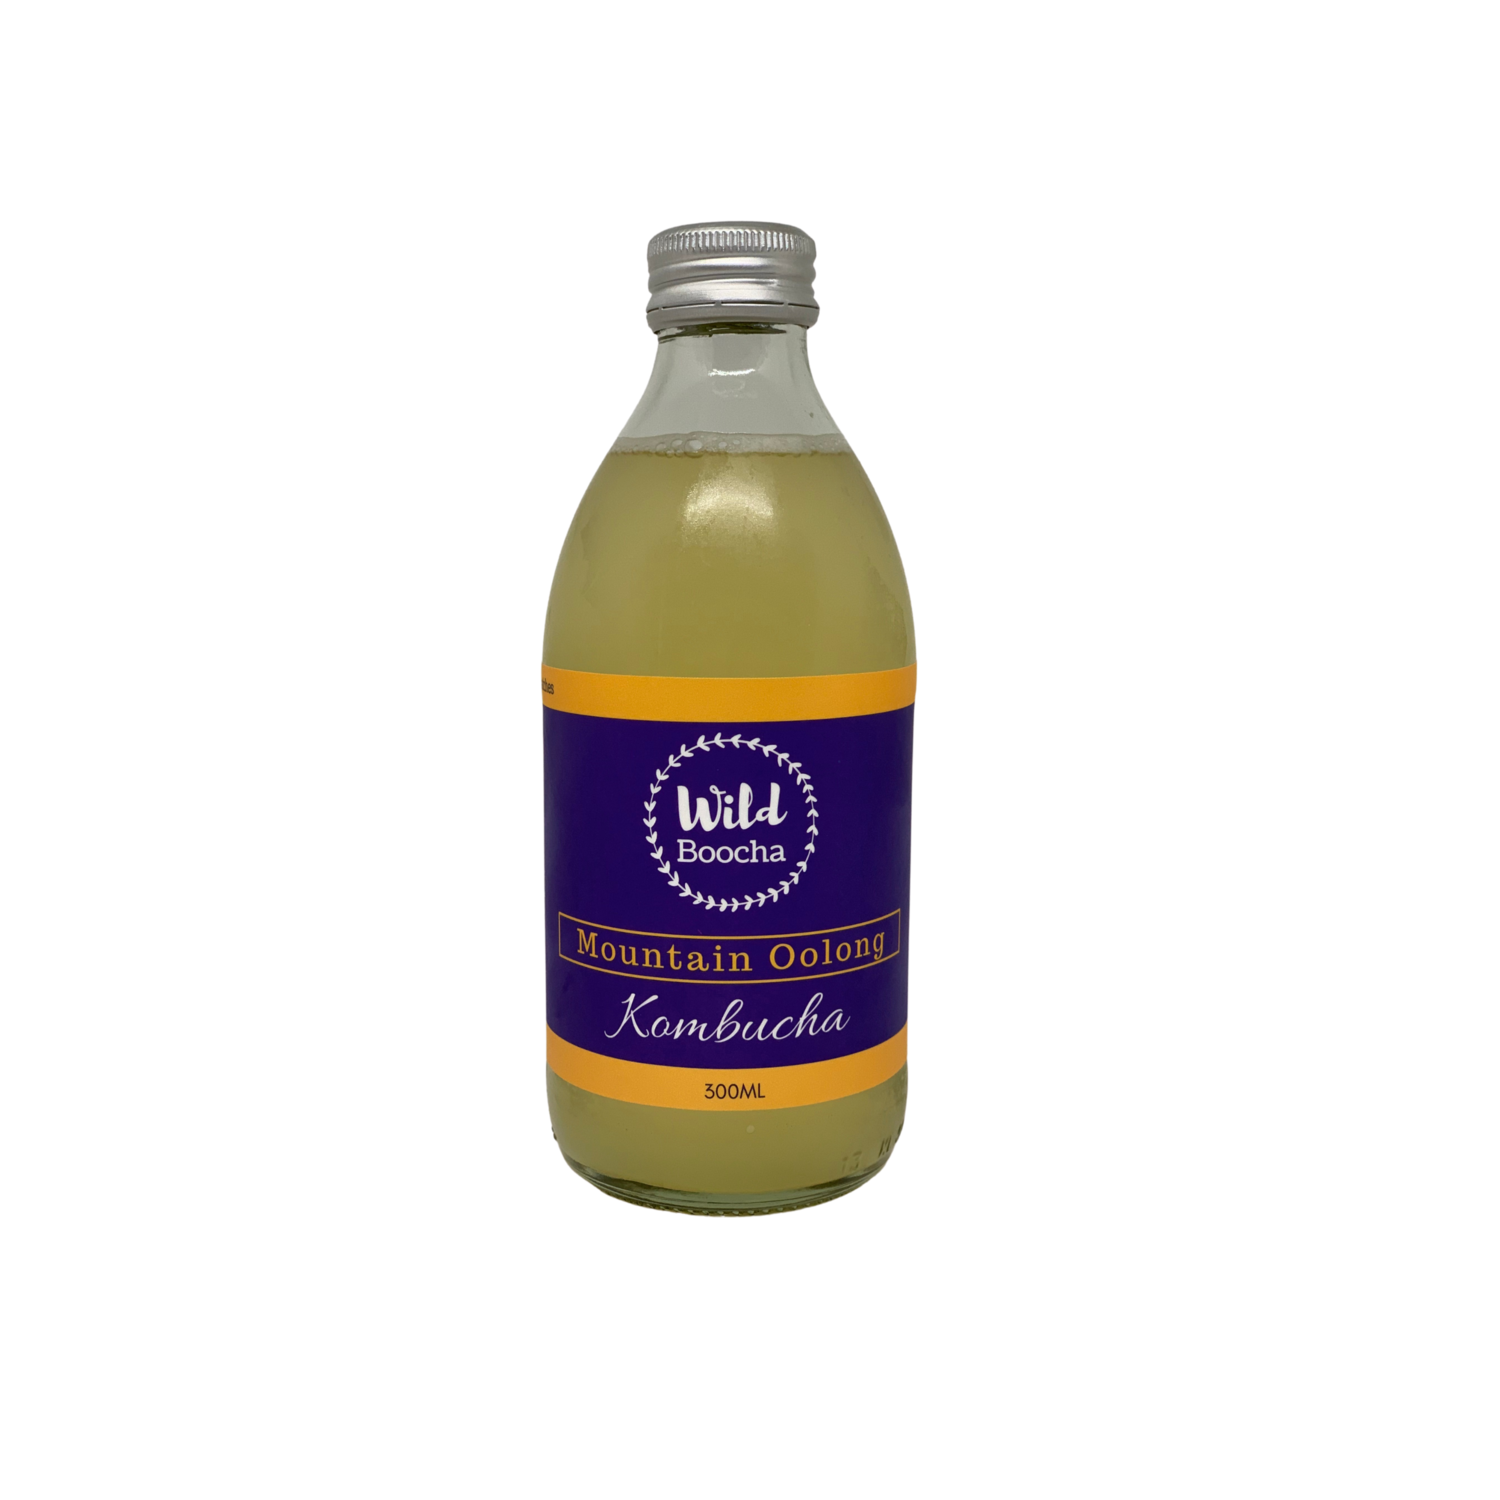 KOMBUCHA - MOUNTAIN OOLONG - $6.50 PER BOTTLE